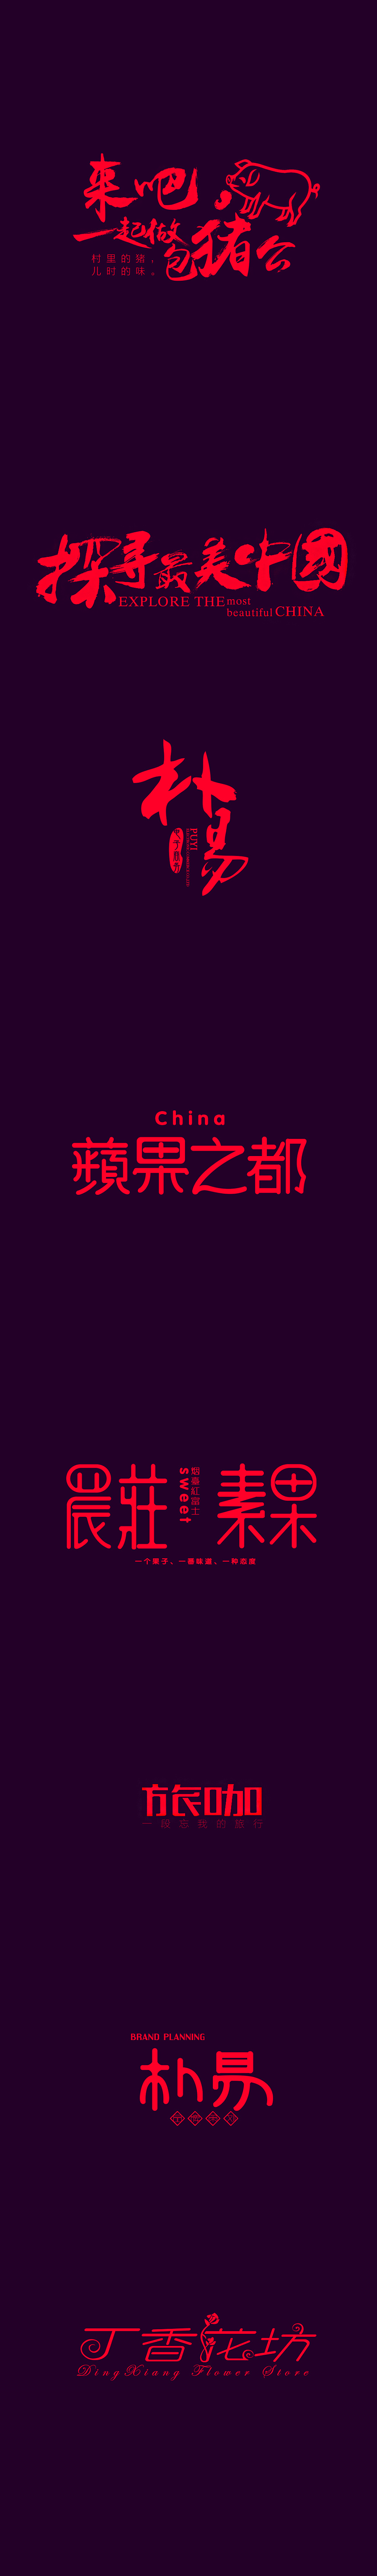 chinesefontdesign.com 2016 11 21 18 43 09 14P Beautiful Chinese typeface design